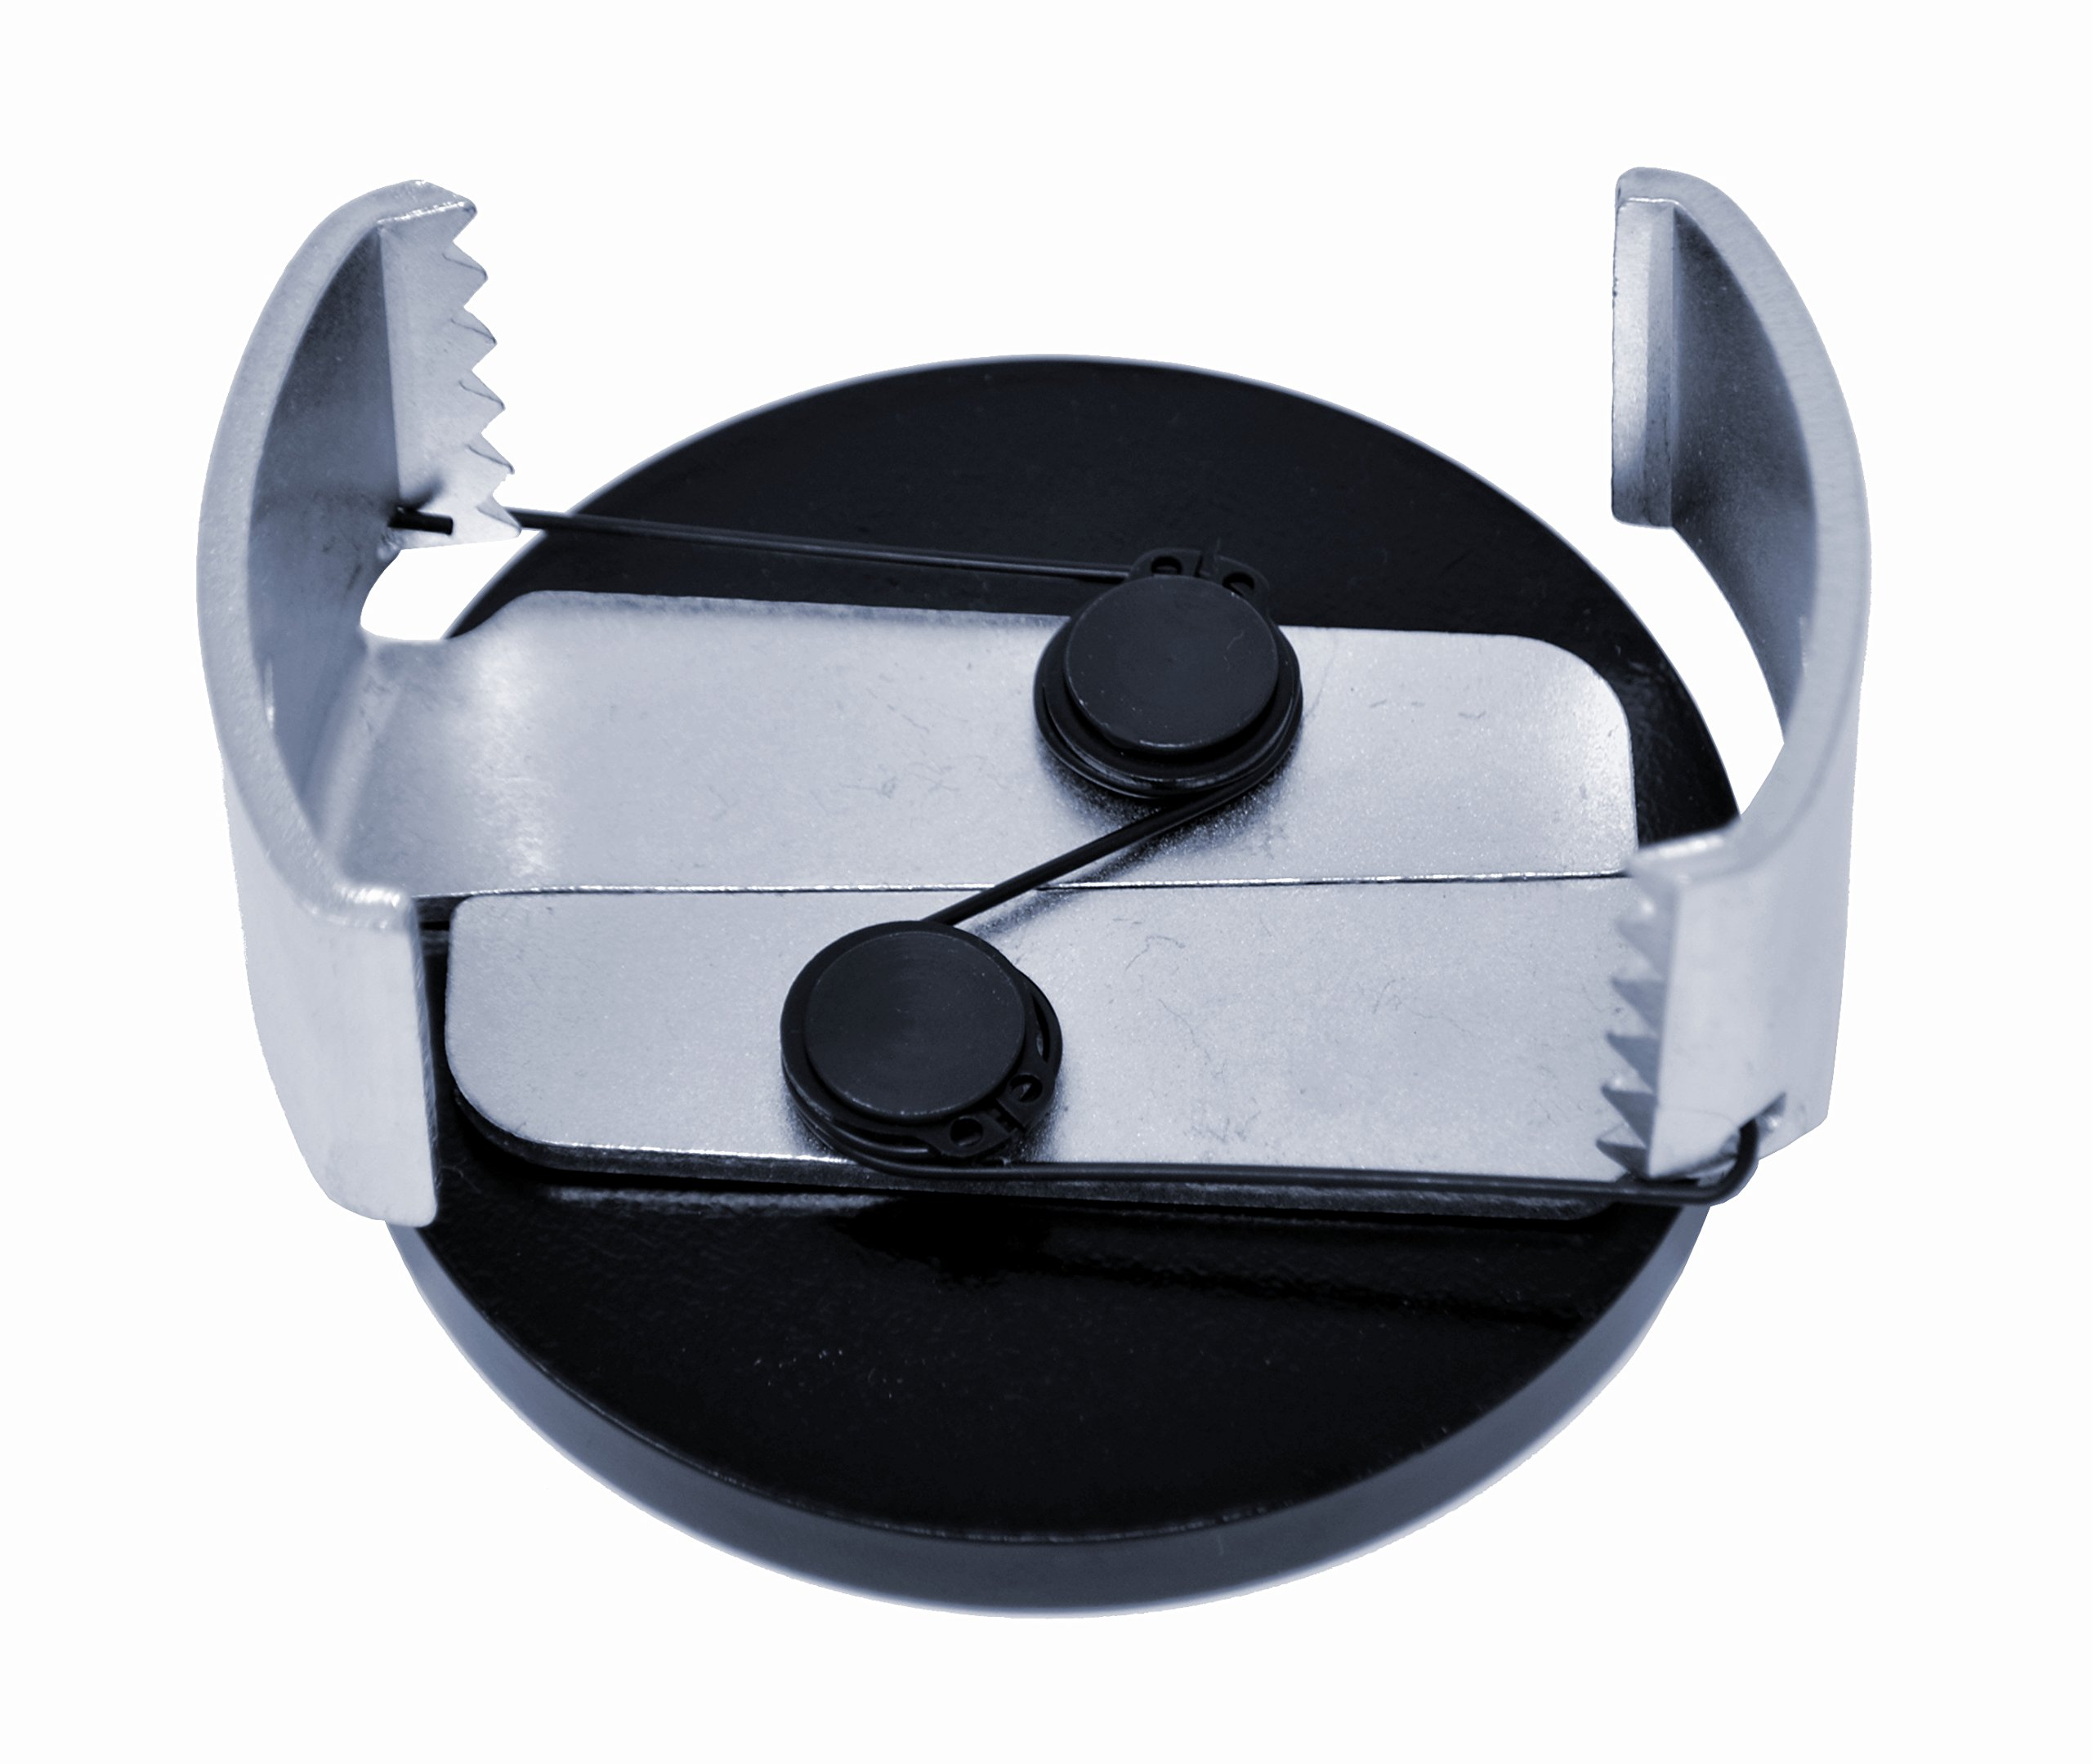 Motivx Tools Large Adjustable Oil Filter Wrench for Removing 3.15'' - 4.15'' Diameter Spin-On Oil Filters - Not for Oil Filter Installation